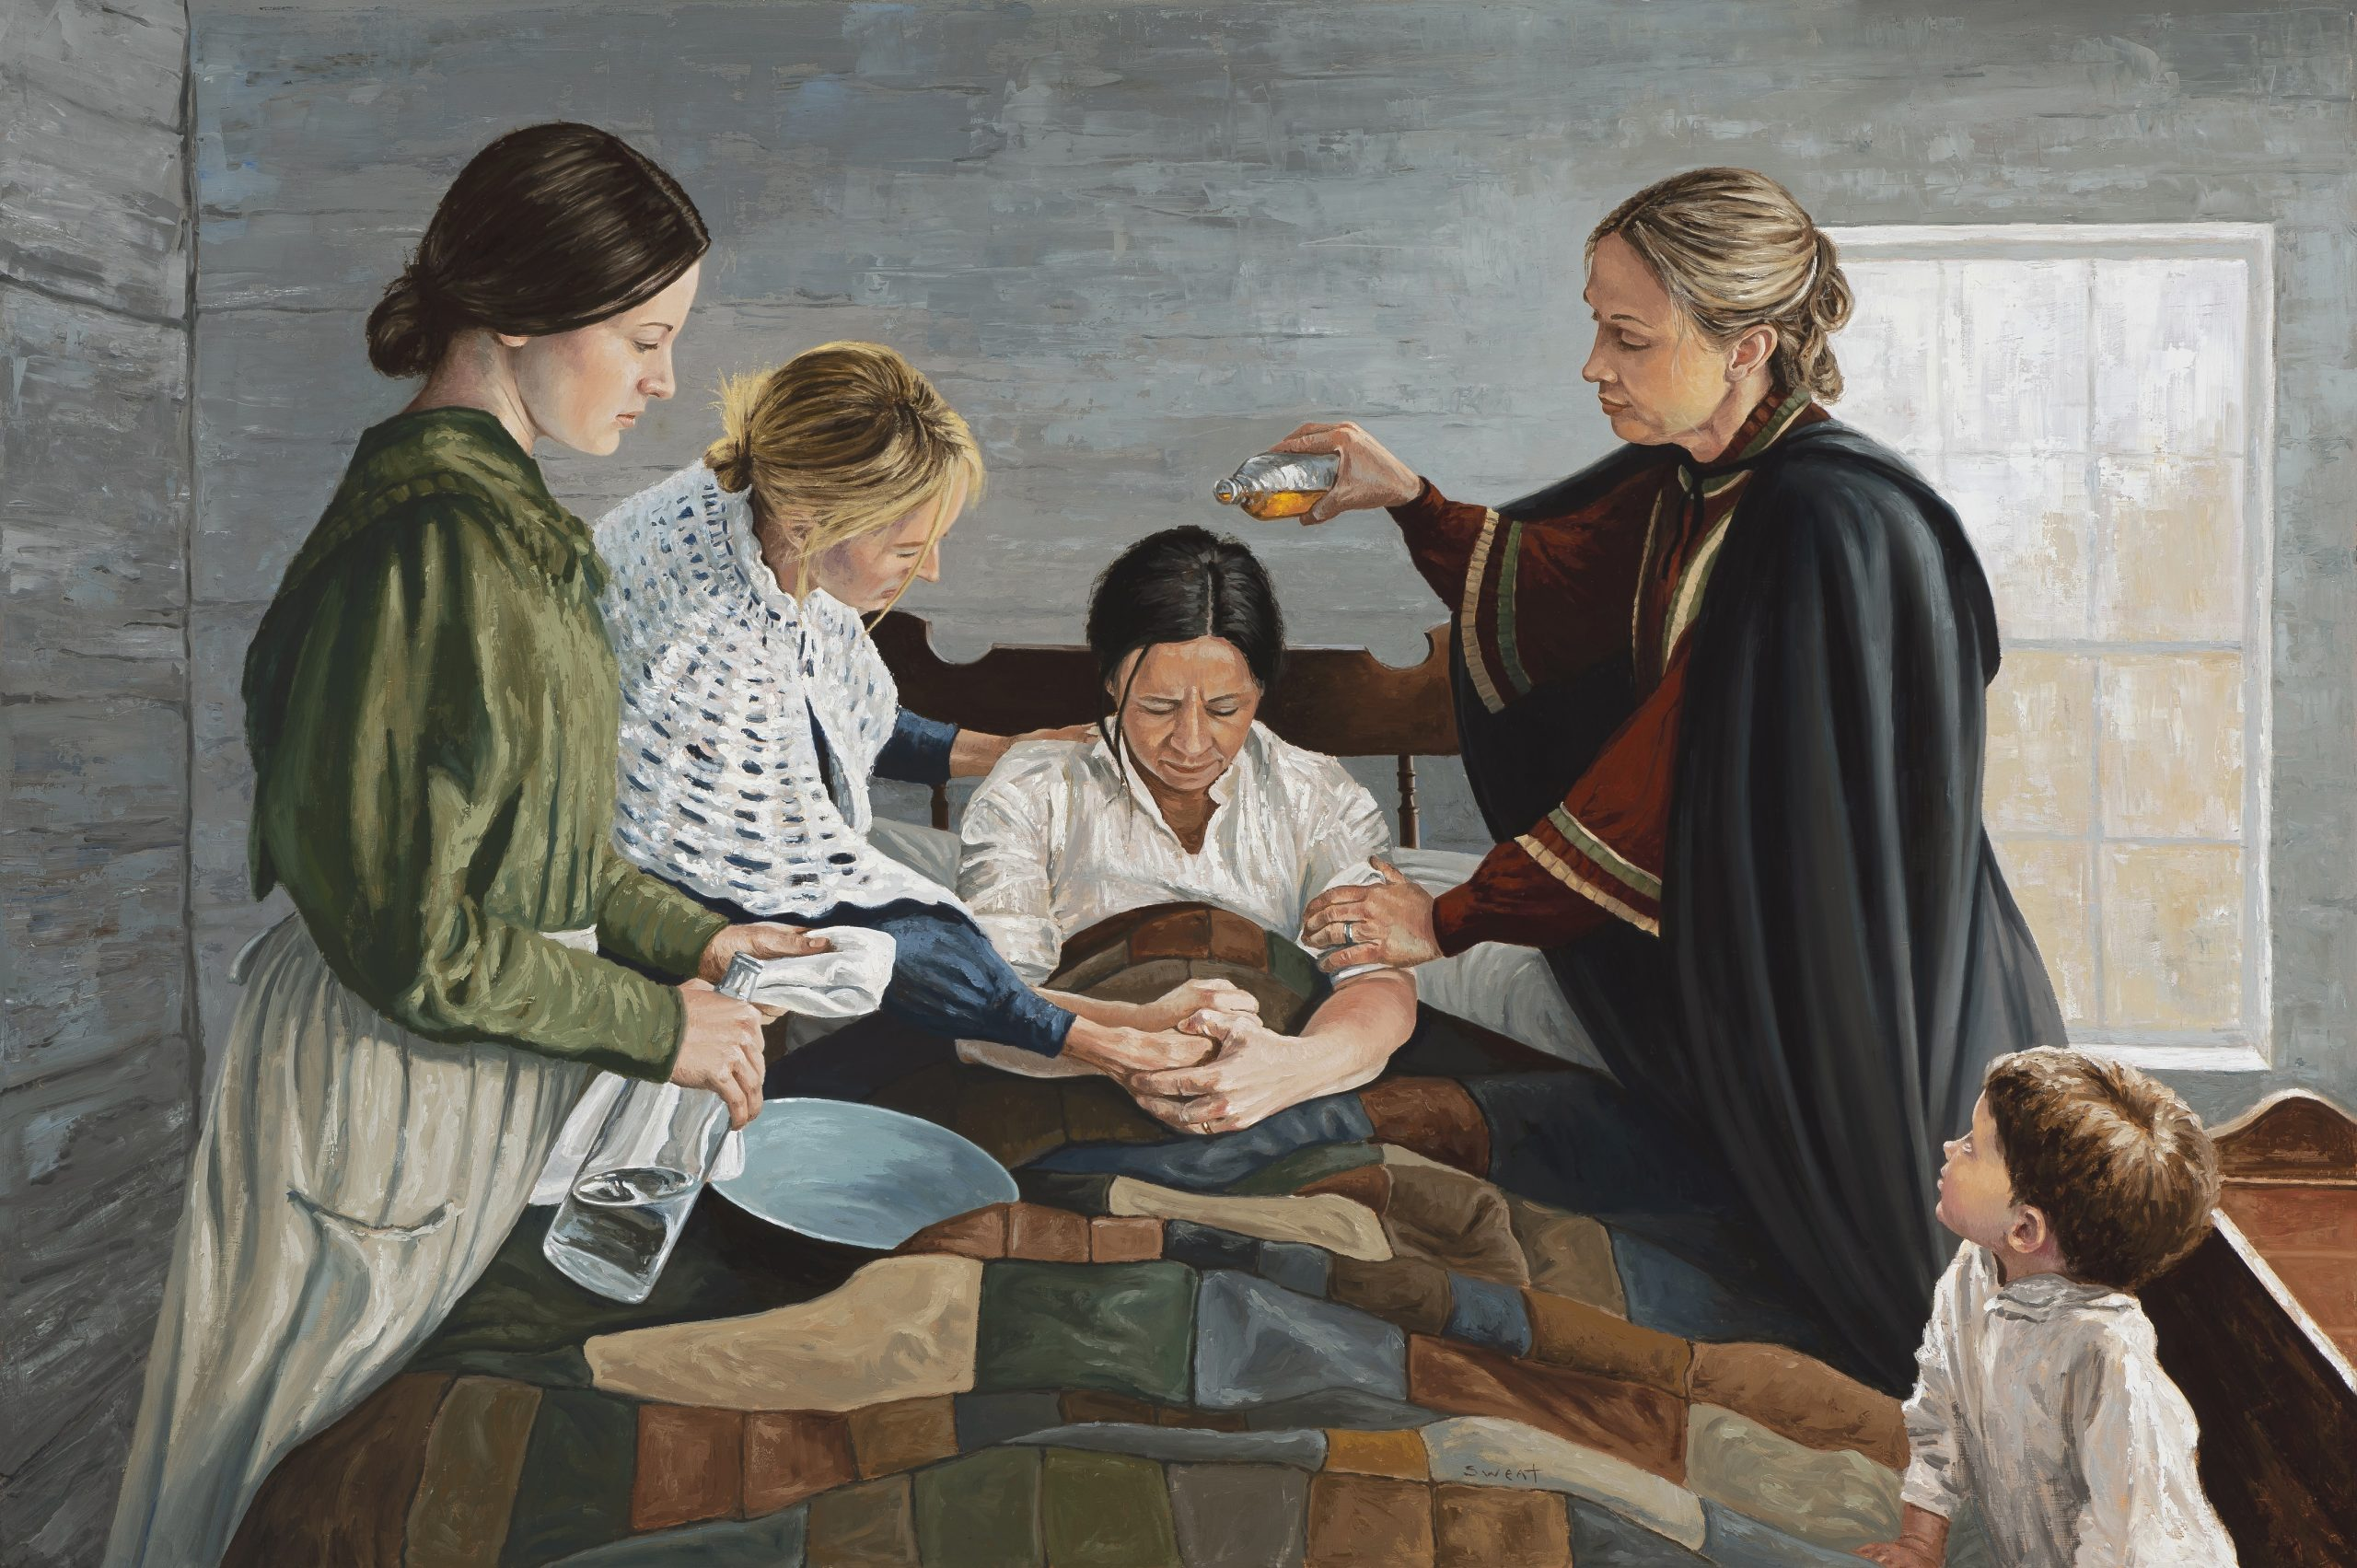 Female Healing Mormonism Relief Society by Anthony Sweat